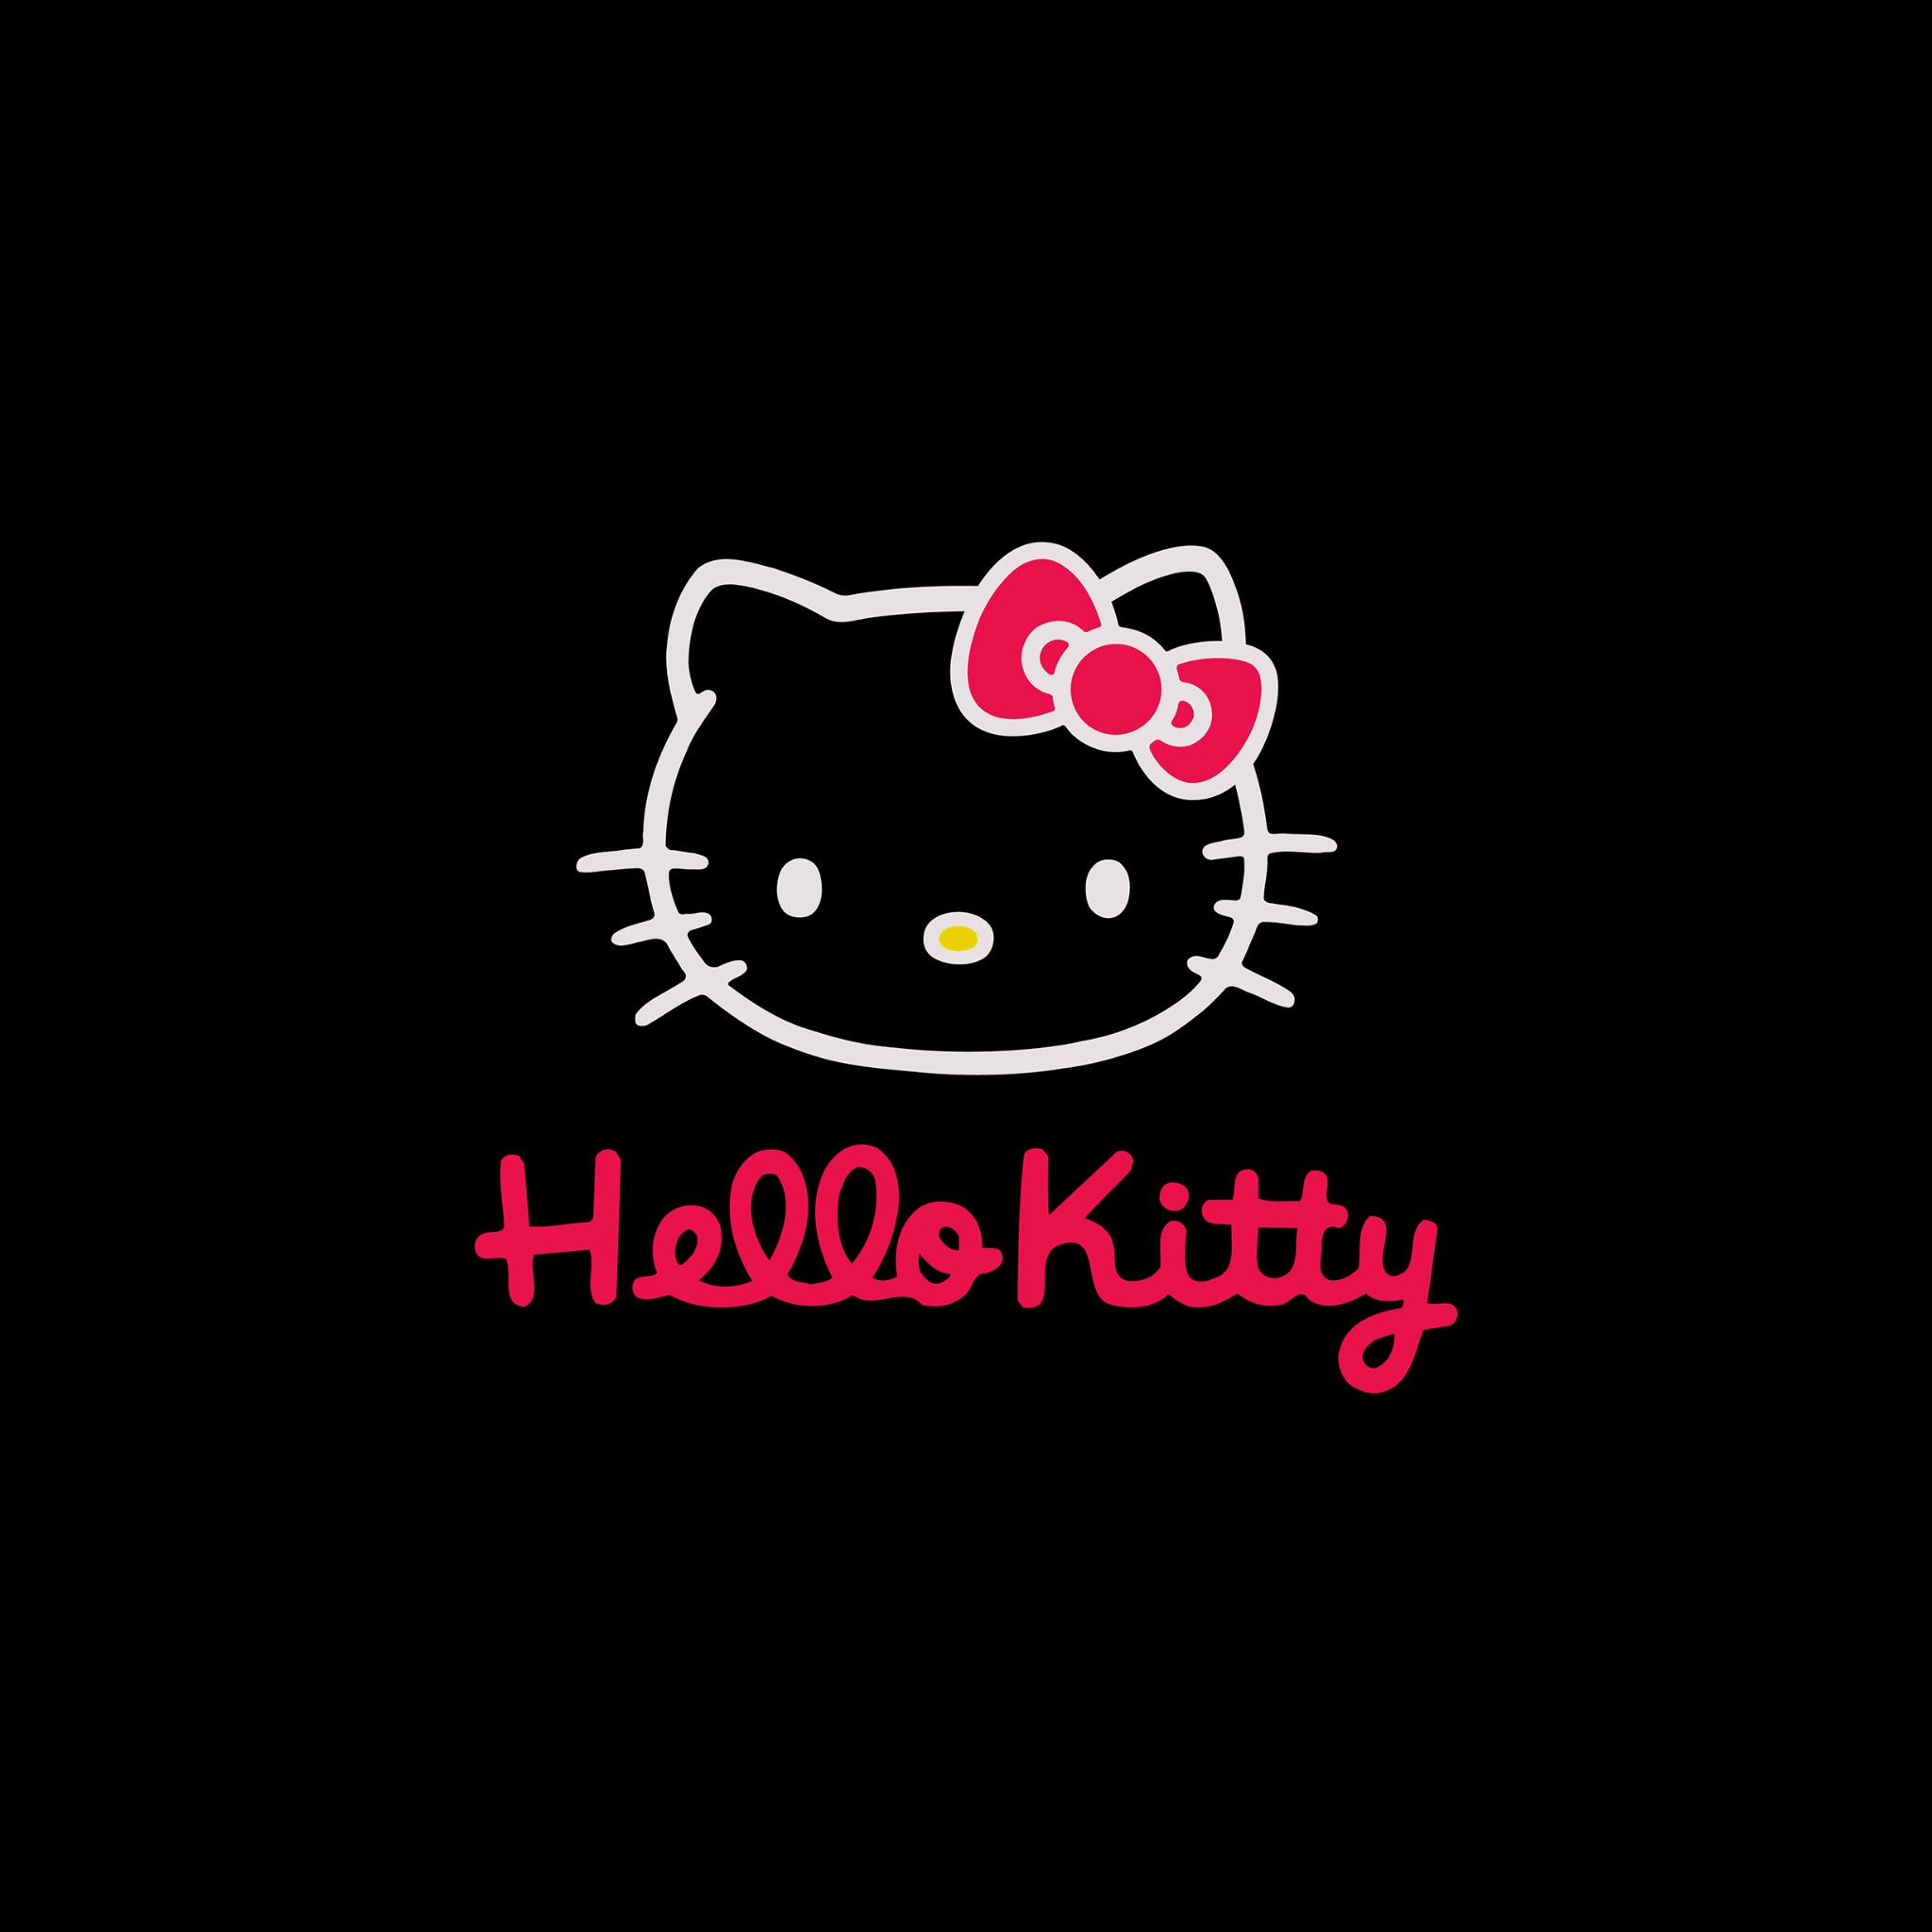 Hello Kitty Dark Tap To See More Cute Hello Kitty Wallpapers Mobile9 Hello Kitty Backgrounds Hello Kitty Wallpaper Hd Hello Kitty